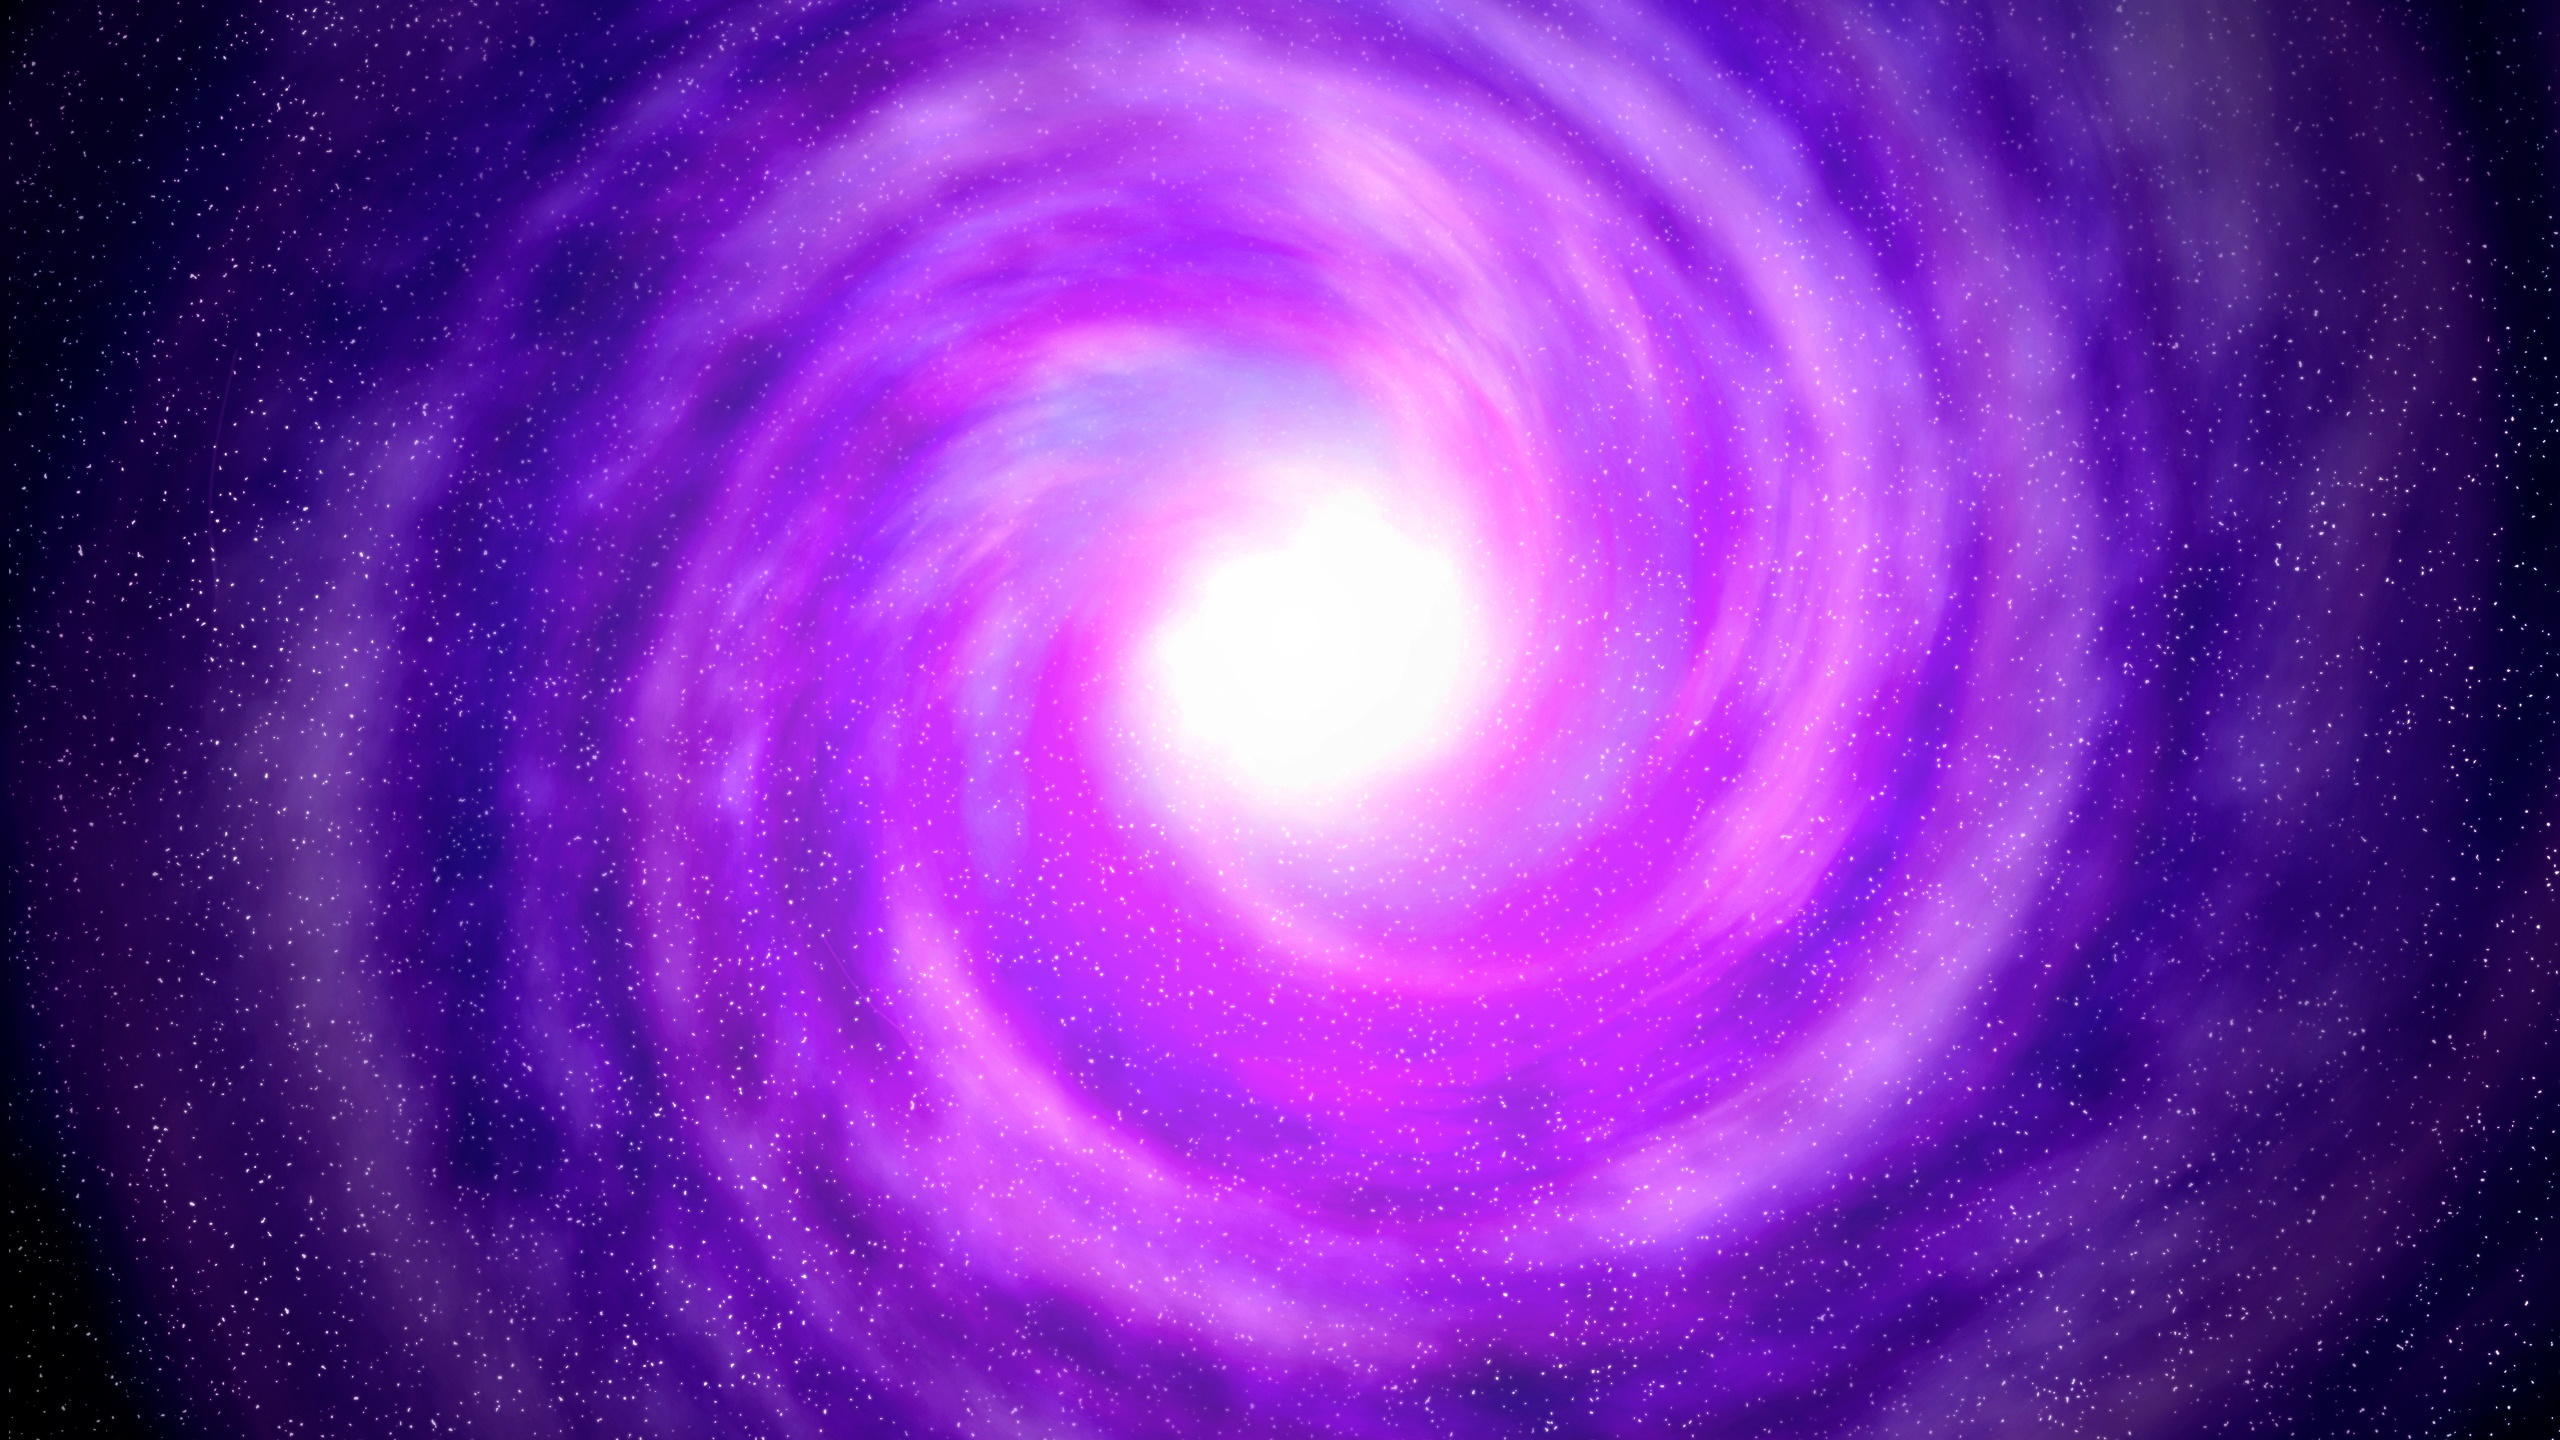 Wallpaper Violet Space Black Hole Stars 2560x1600 Hd